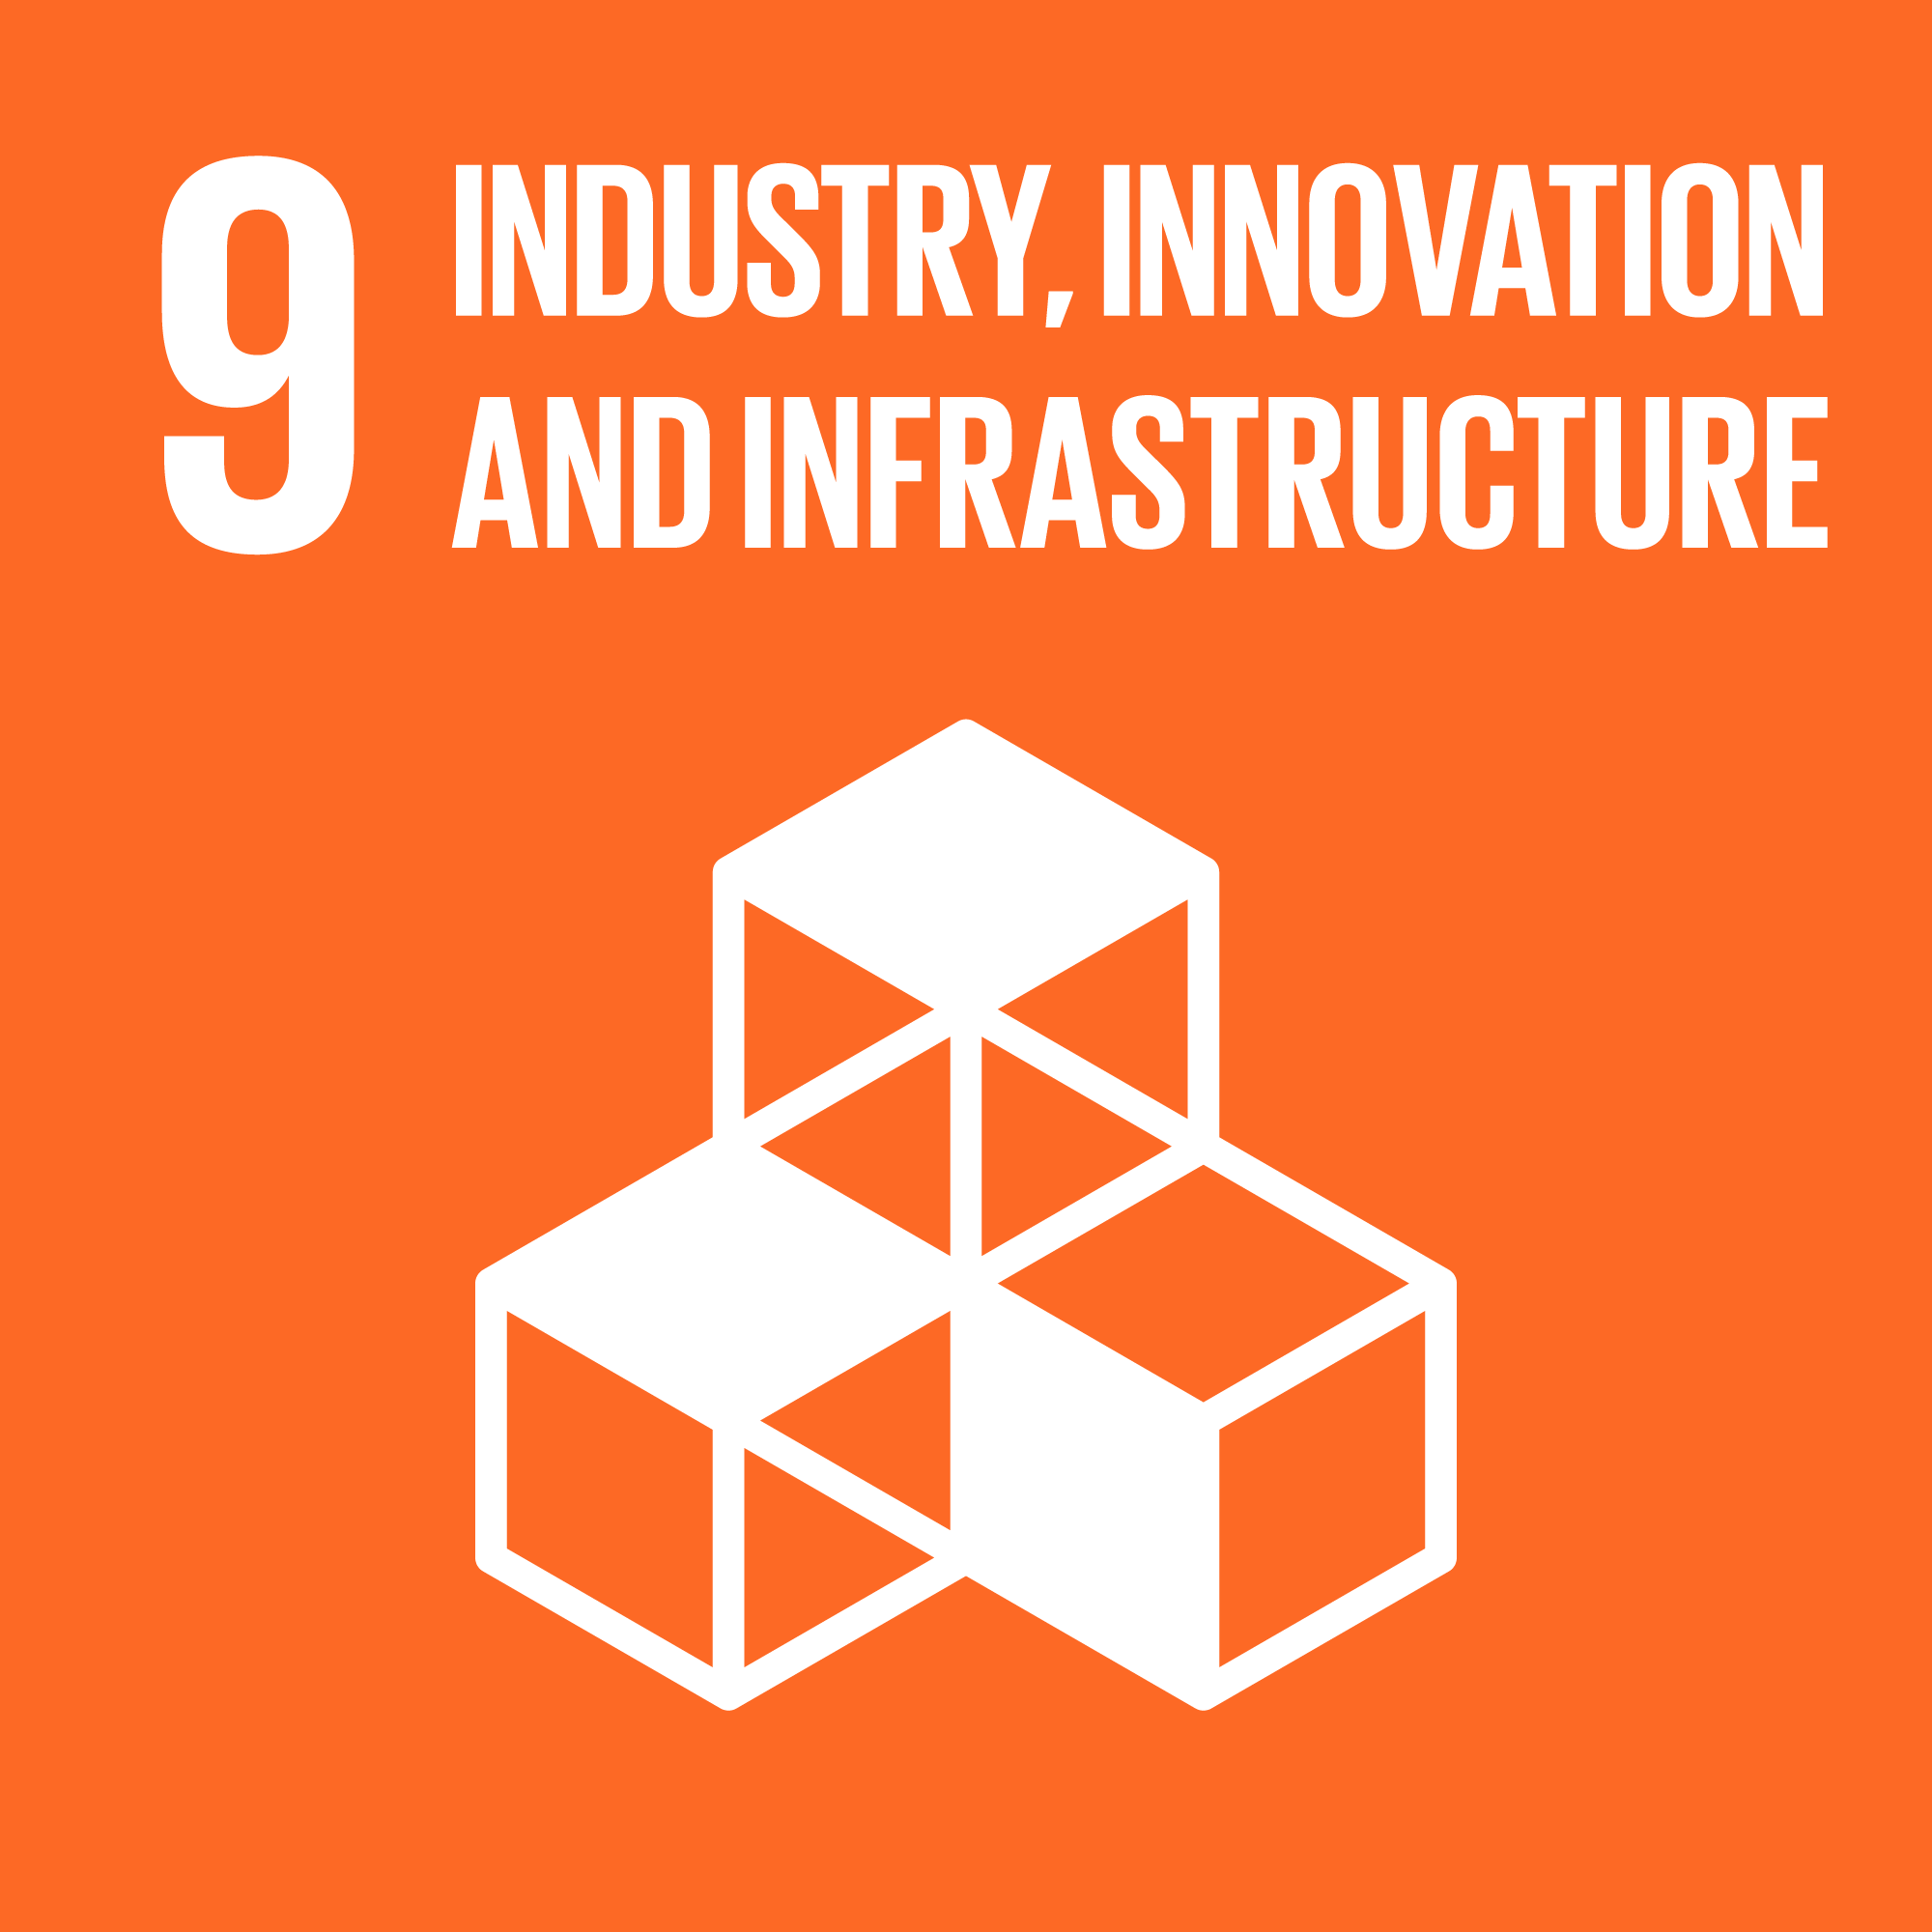 Goal 9. Build resilient infrastructure, promote inclusive and sustainable industrialization and foster innovation    8 Targets    12 Indicators